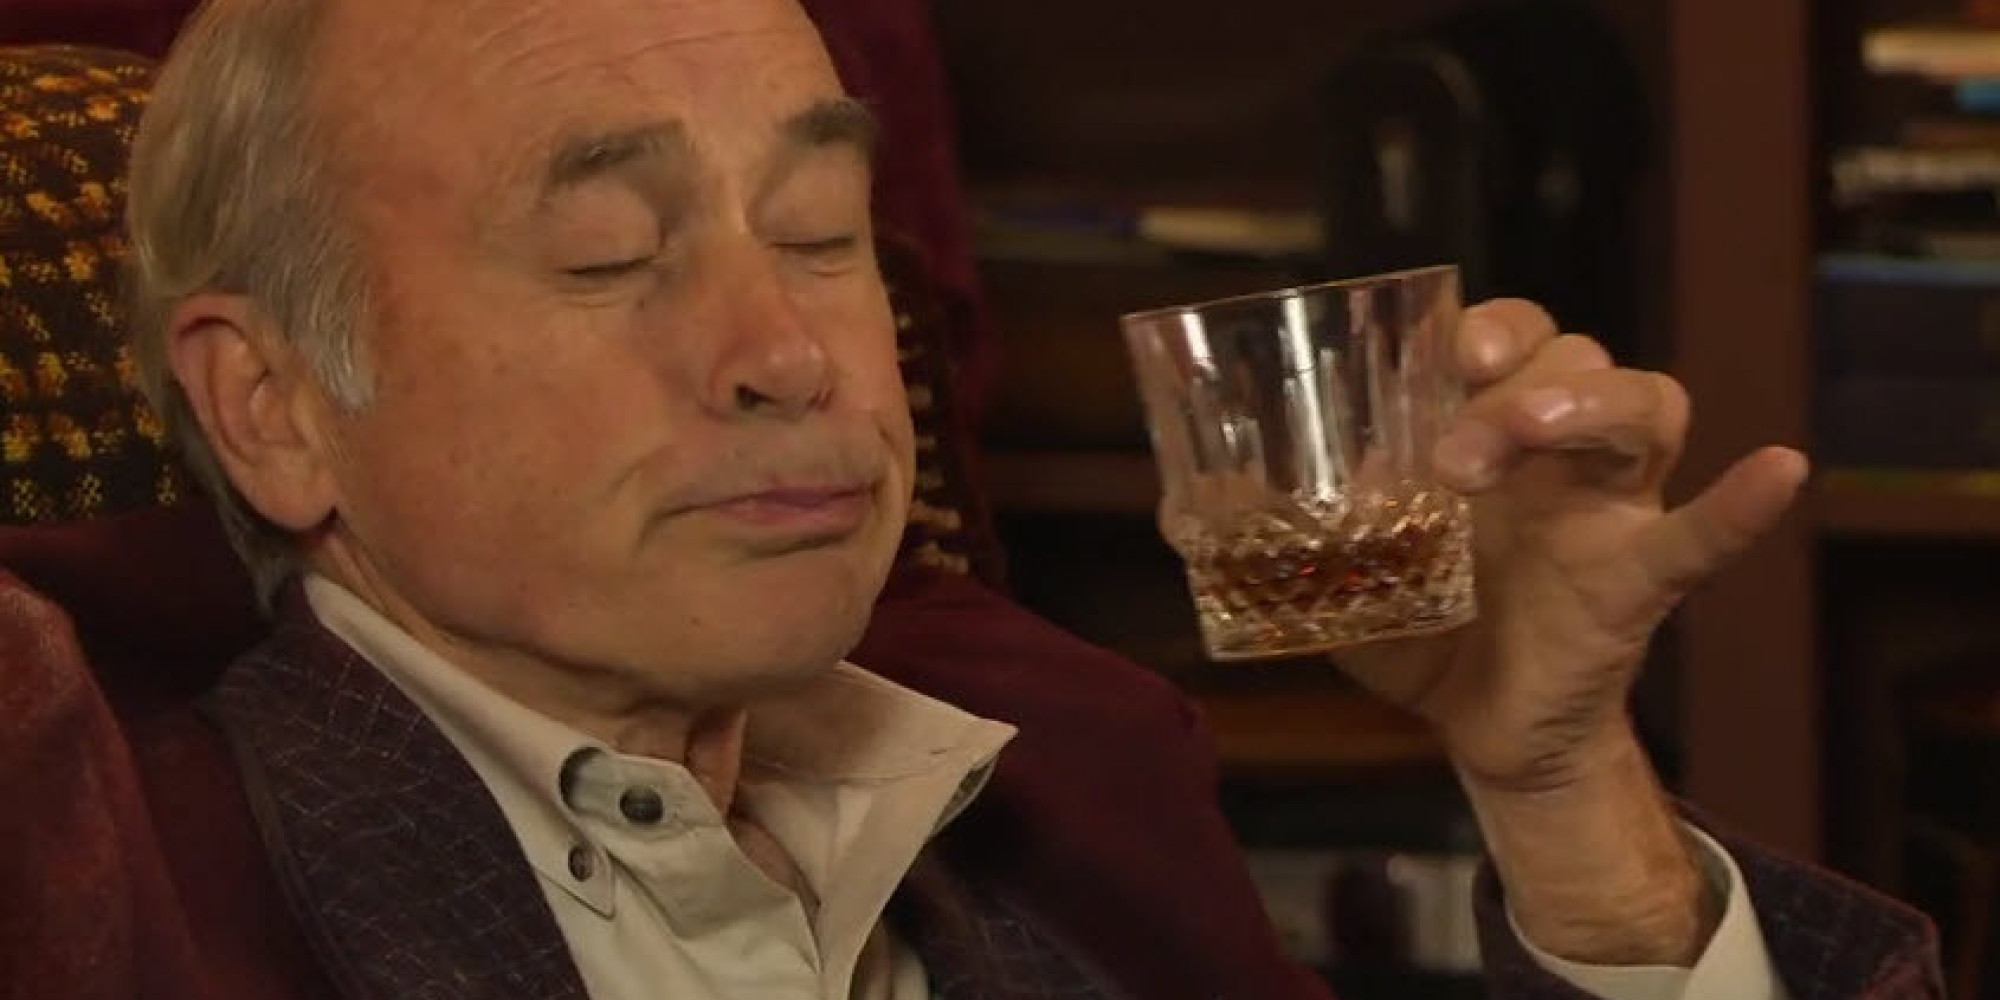 john dunsworth twitterjohn dunsworth sarah dunsworth related, john dunsworth imdb, john dunsworth, john dunsworth the candidate, john dunsworth net worth, john dunsworth interview, john dunsworth book, john dunsworth haven, john dunsworth twitter, john dunsworth young, john dunsworth yacht, john dunsworth house, john dunsworth tour, john dunsworth santa quest, john dunsworth drunk, john dunsworth ama, john dunsworth height